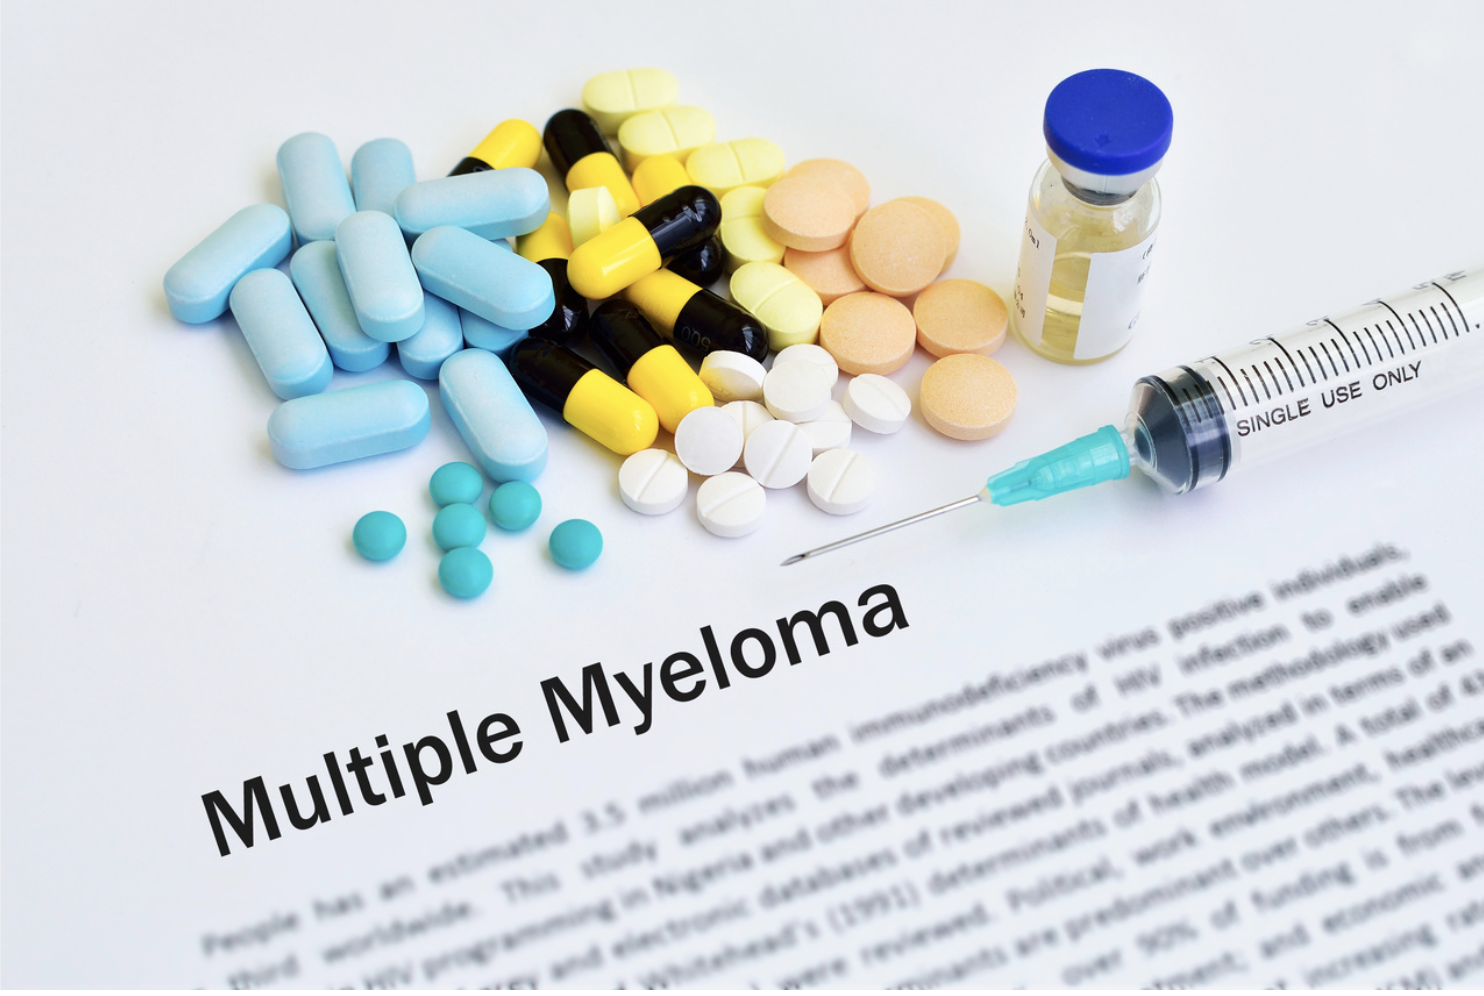 New Bispecific Monoclonal Antibody Shows Deep, Durable Responses in Relapsed, Refractory Multiple Myeloma